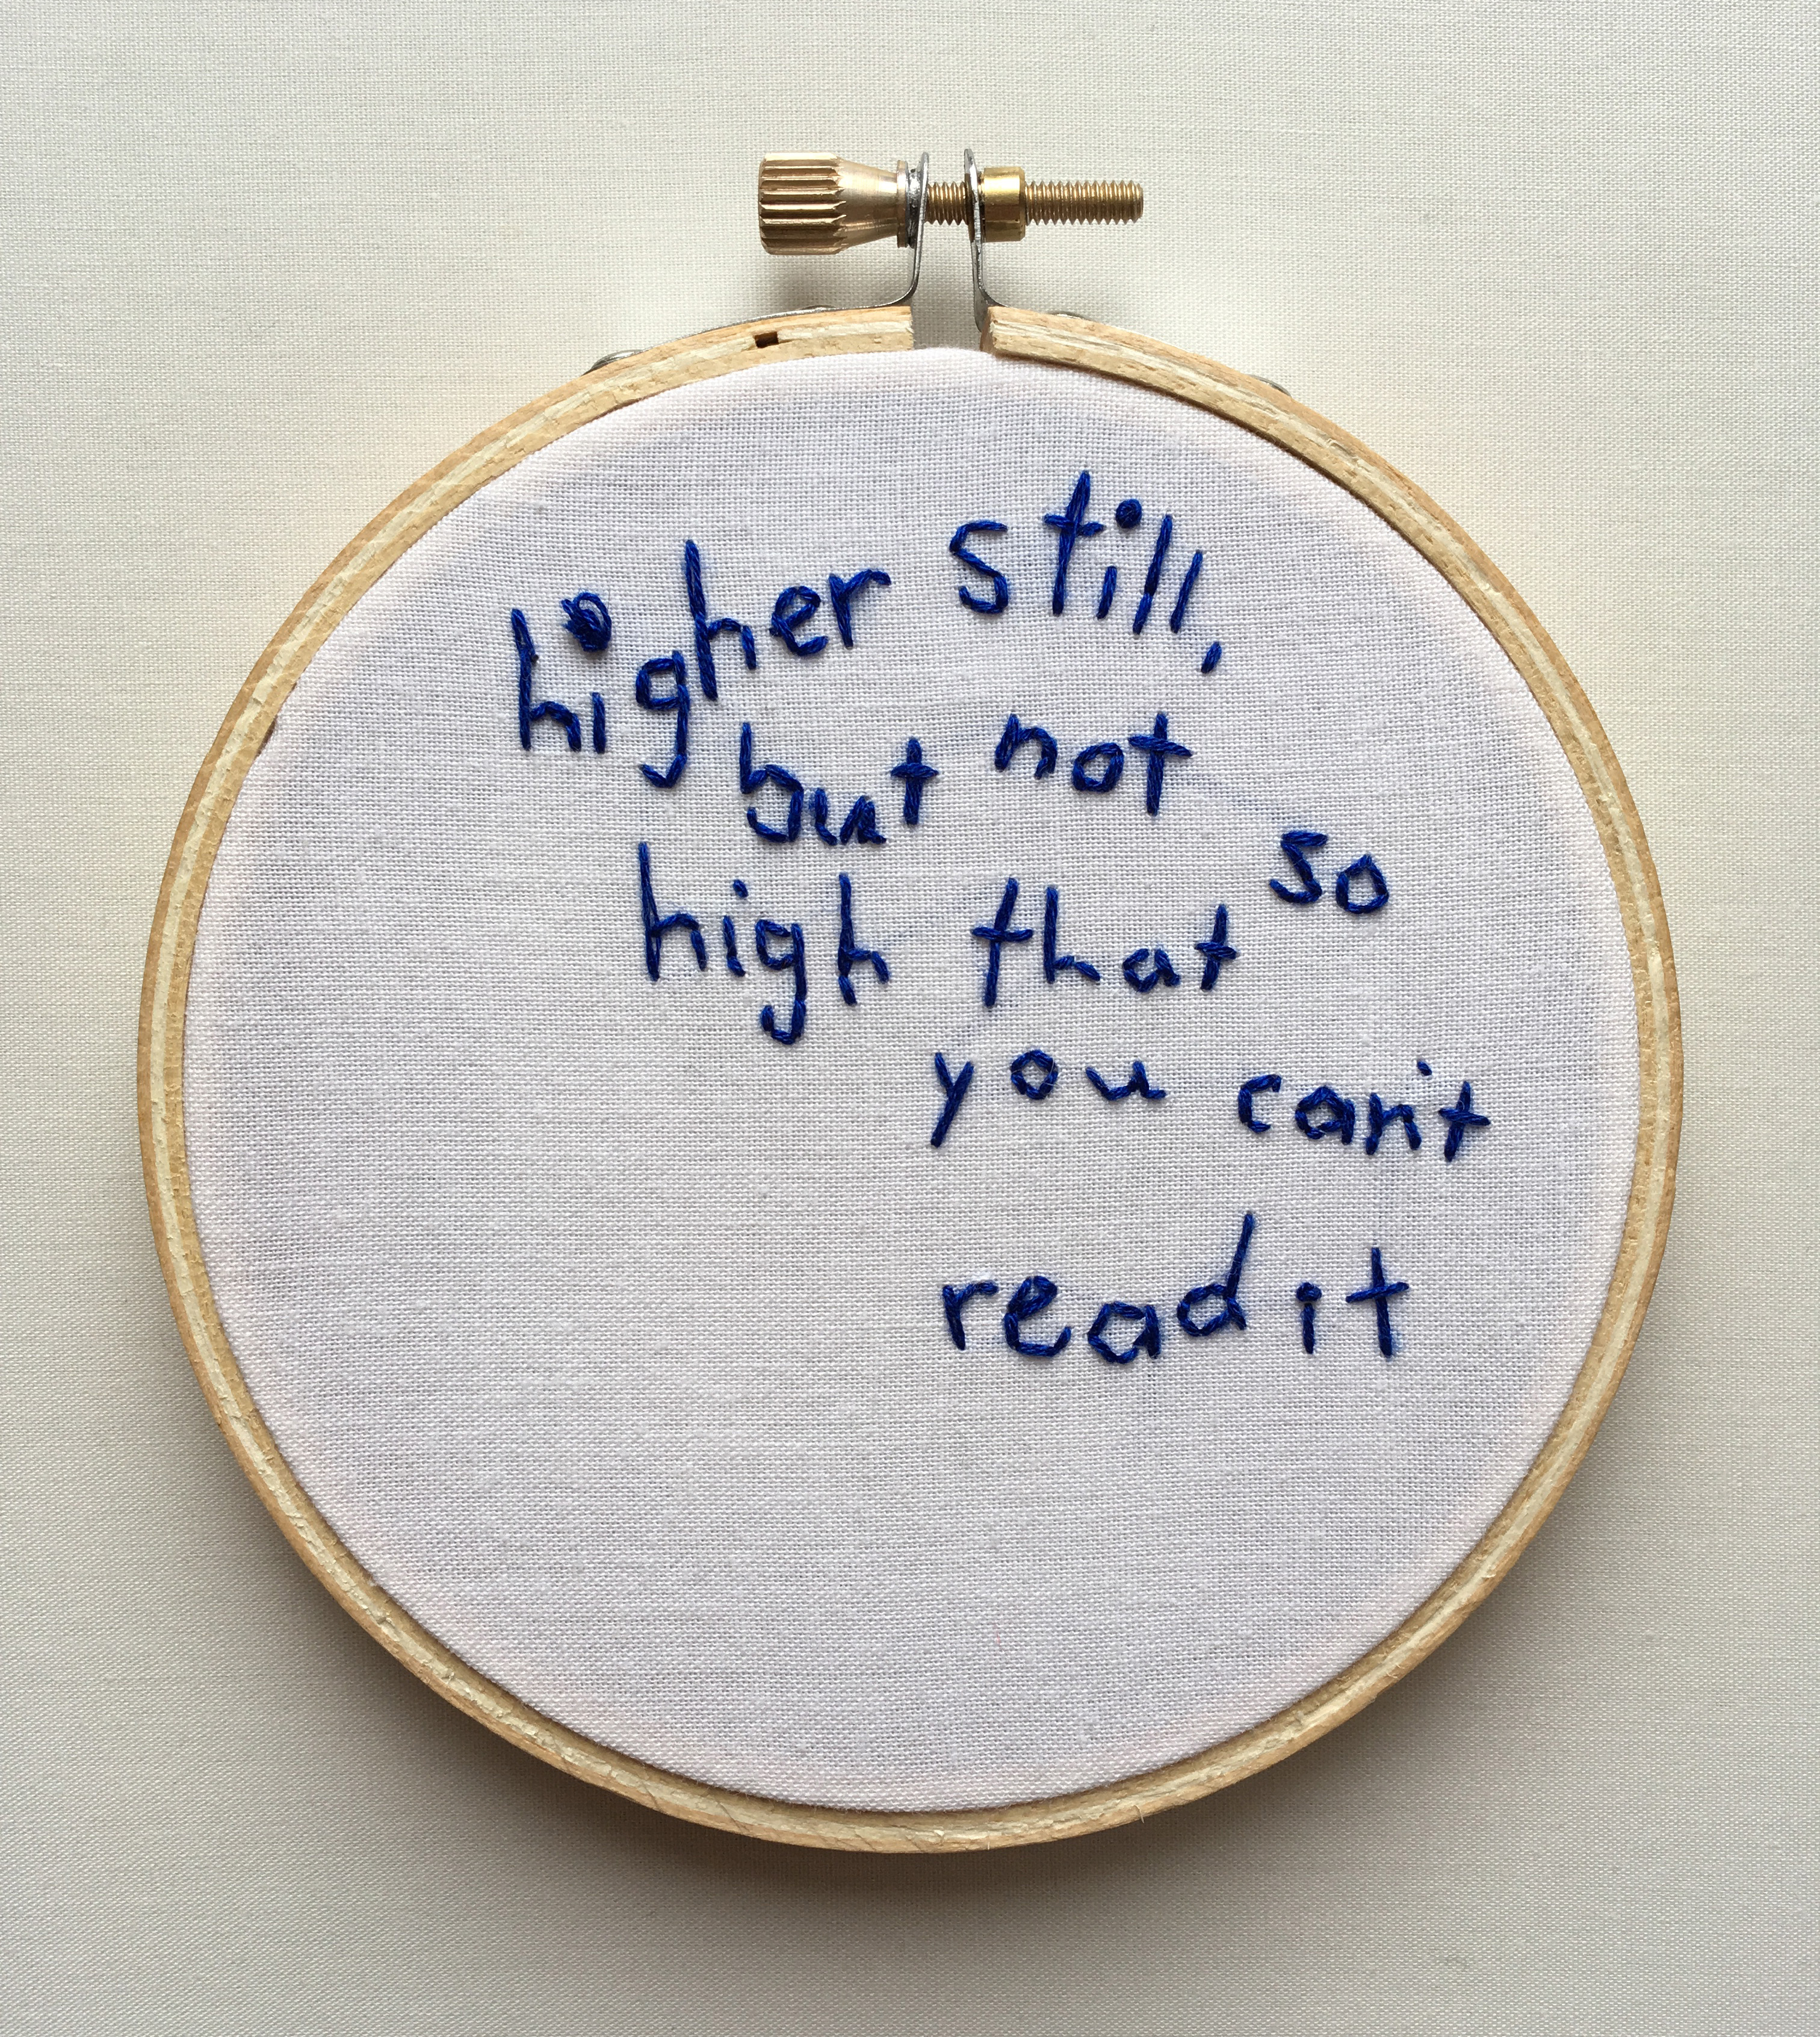 """An embroidery of the text """"higher still, but not so high that you cant read it"""" on white fabric stretched over a hoop."""